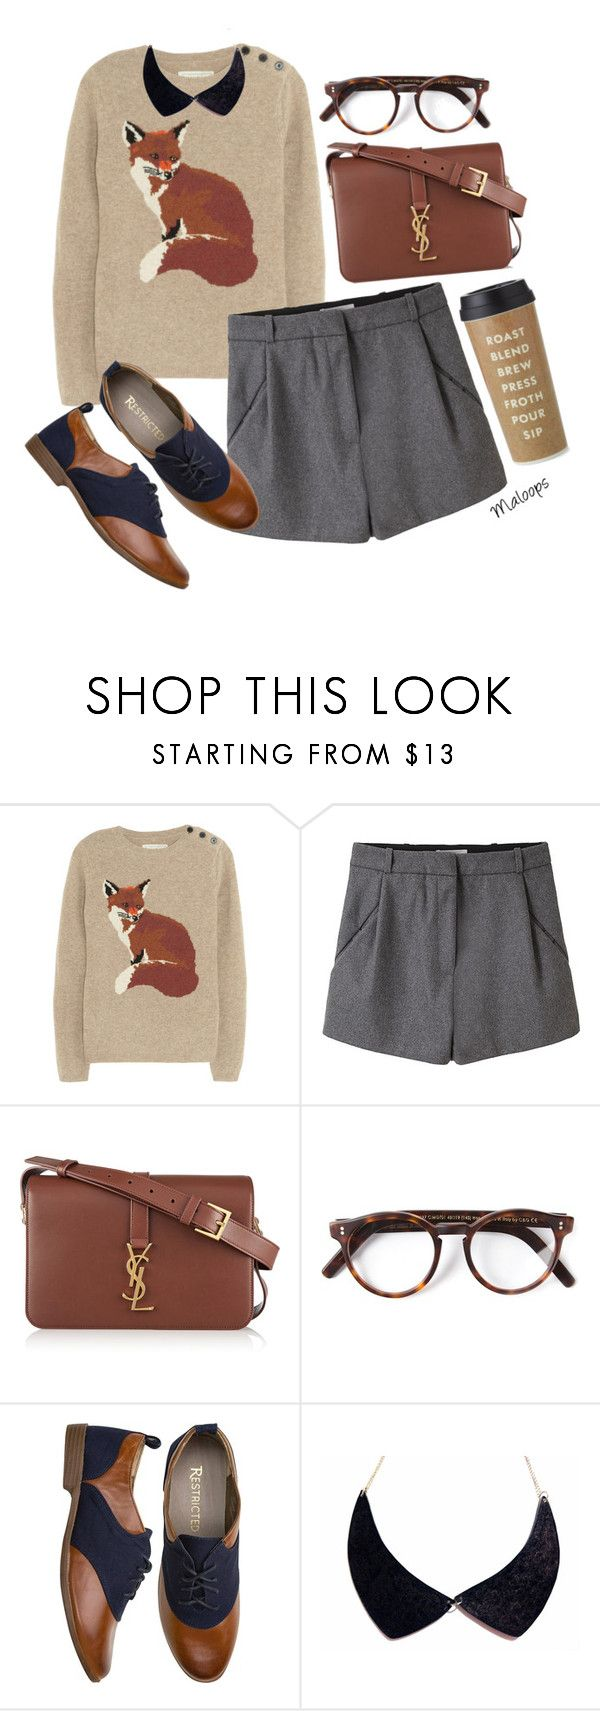 """//Why enjoy today when you could be worrying about tomorrow?- Spencer Hastings//"" by maloops ❤ liked on Polyvore featuring Aubin & Wills, Acne Studios, Yves Saint Laurent, Cutler and Gross, Kate Spade, preppy, pll and spencer"